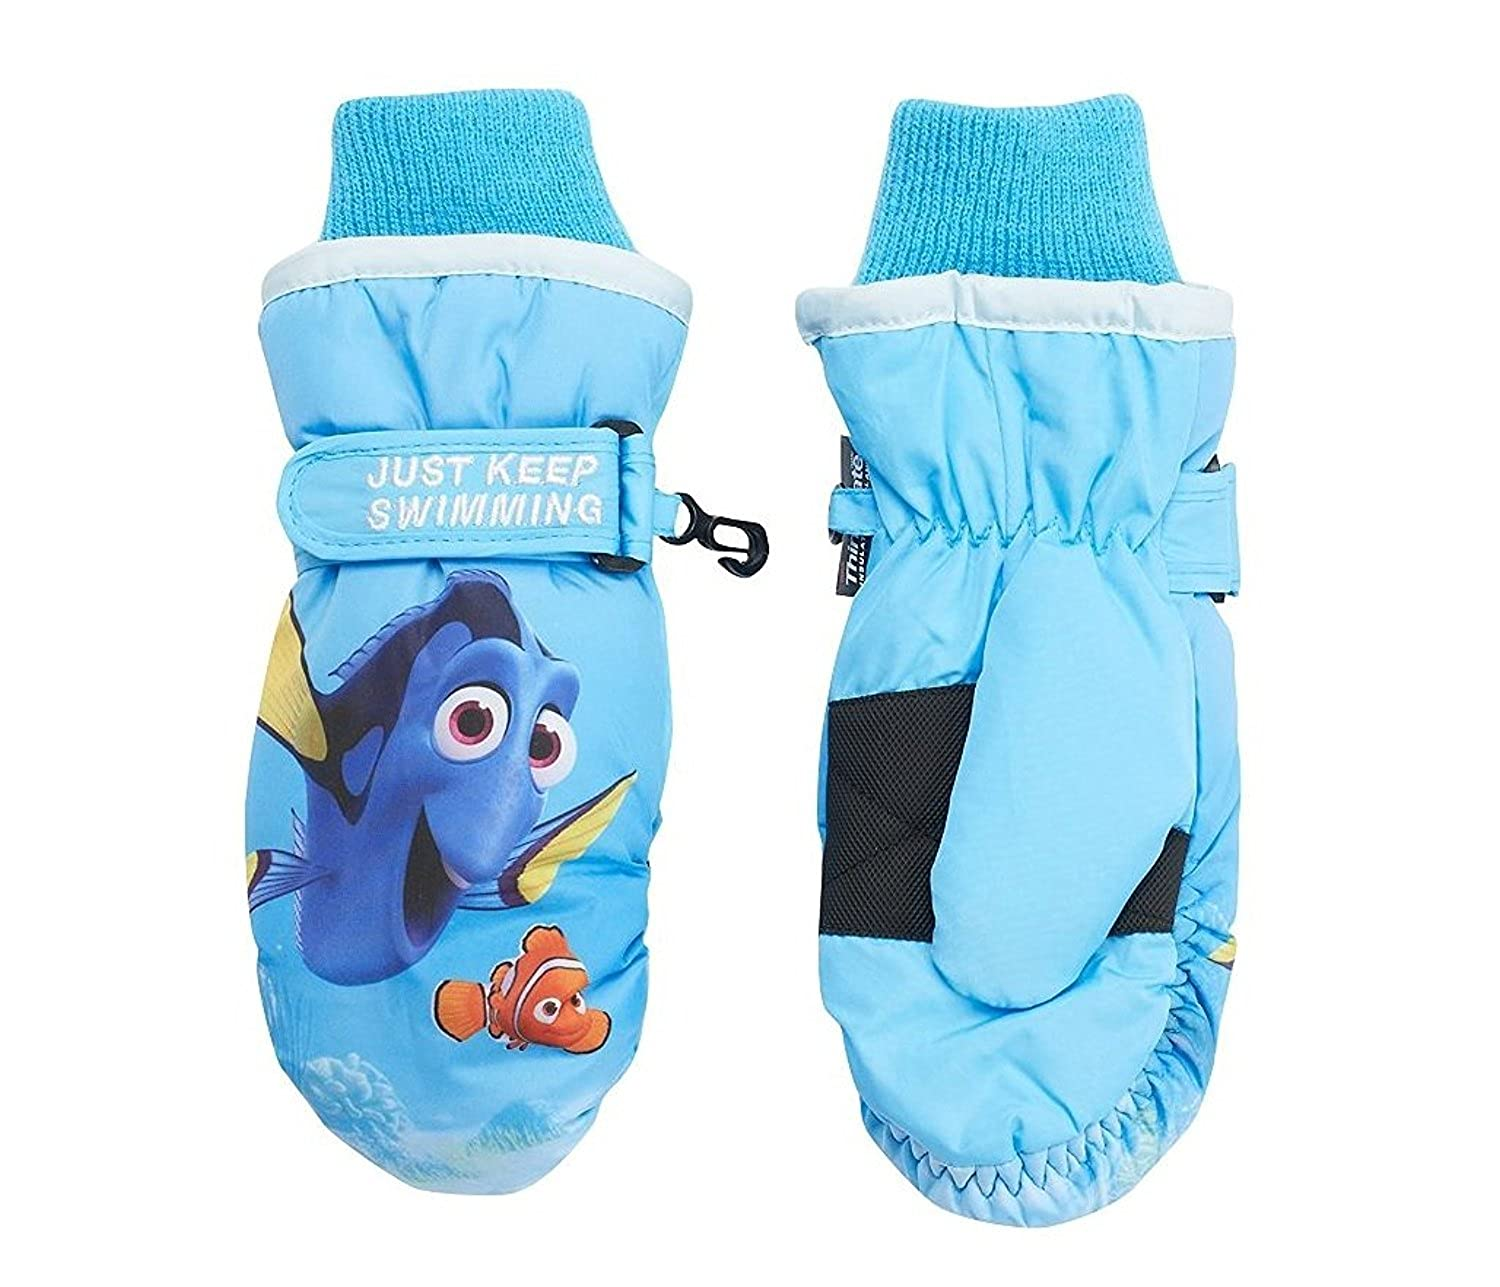 Girls Child Disney Finding Dory Thinsulate Snow Ski Mittens ages 4 to 8